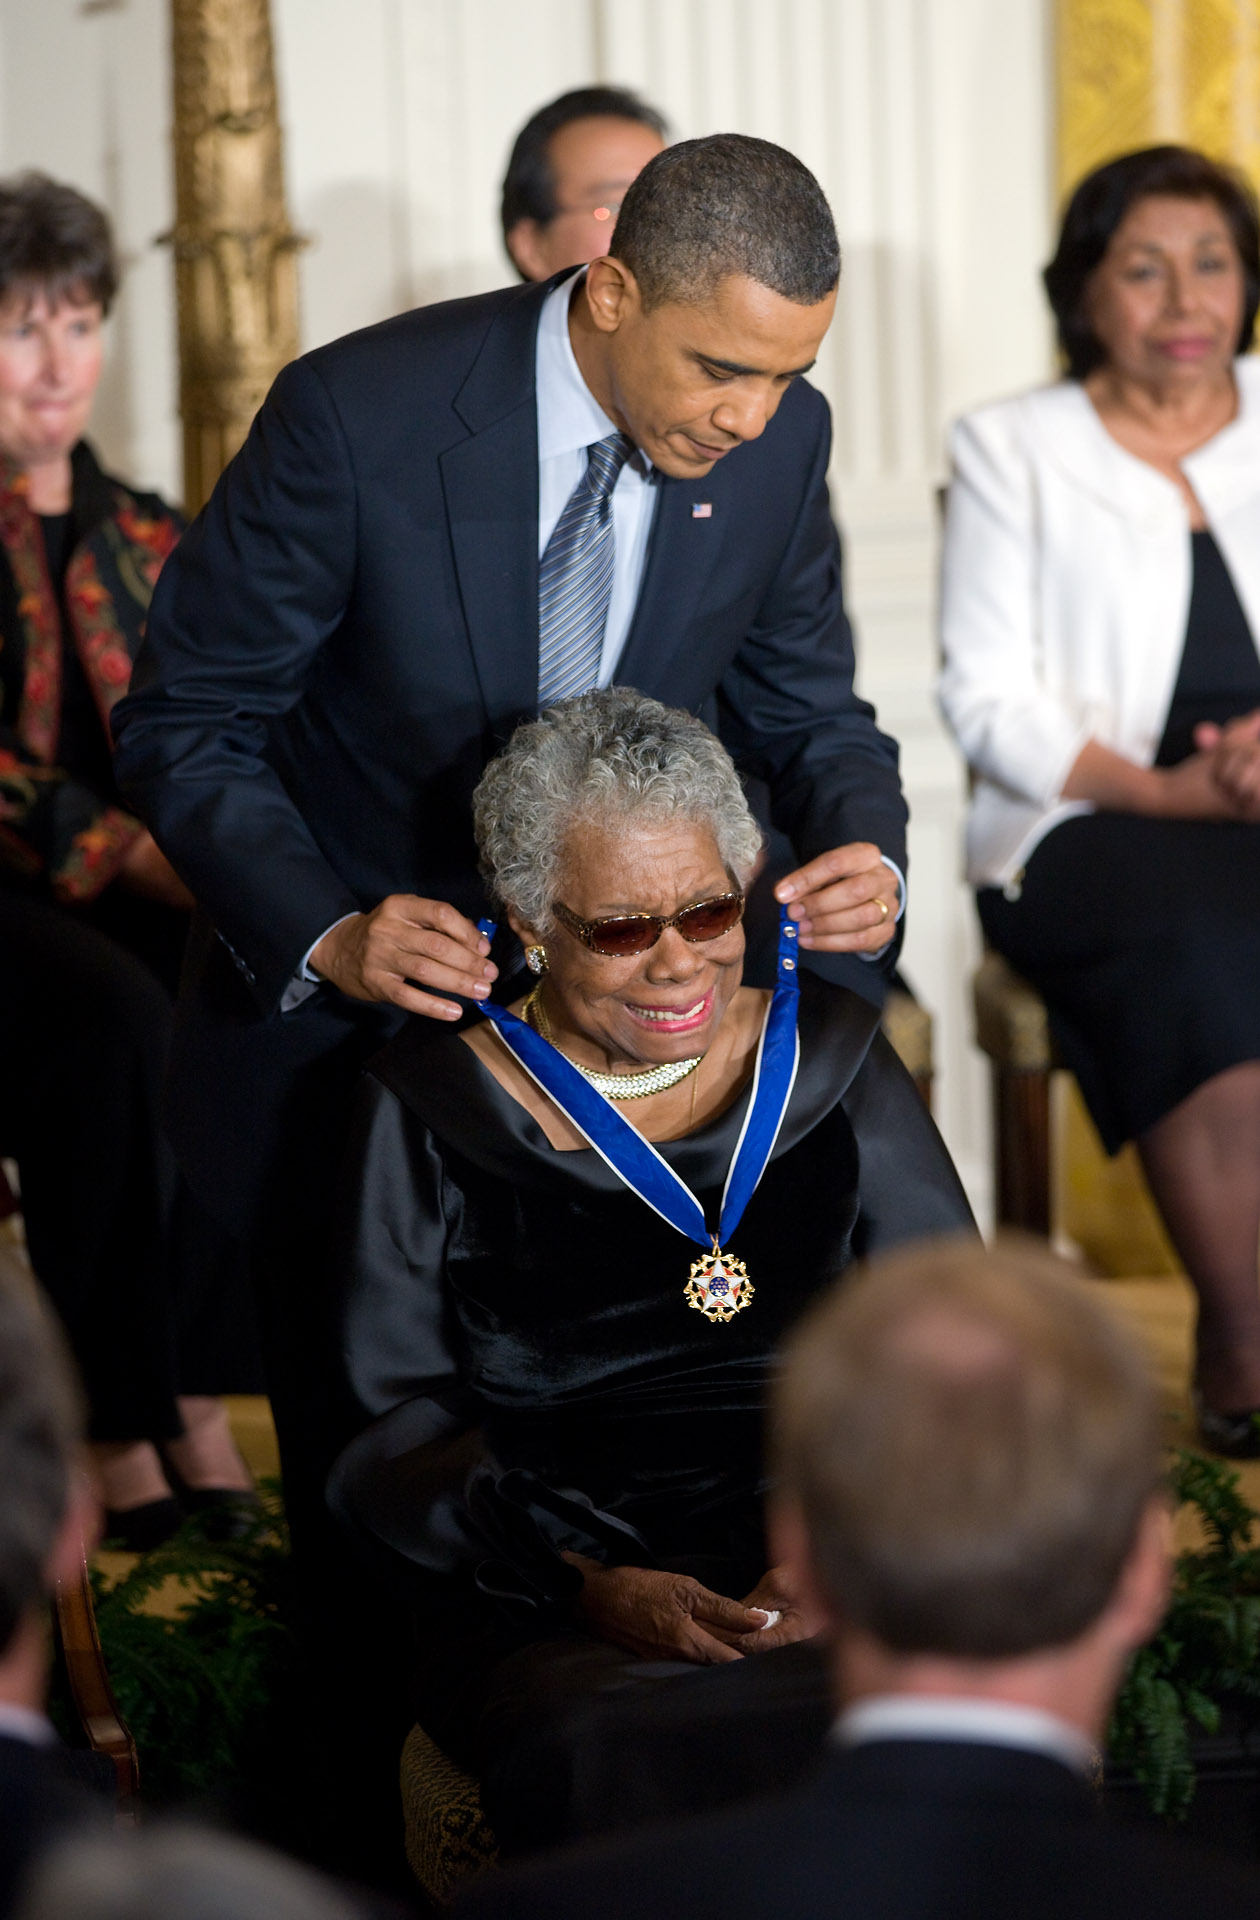 President Barack Obama awards the 2010 Presidential Medal of Freedom to Dr. Maya Angelou